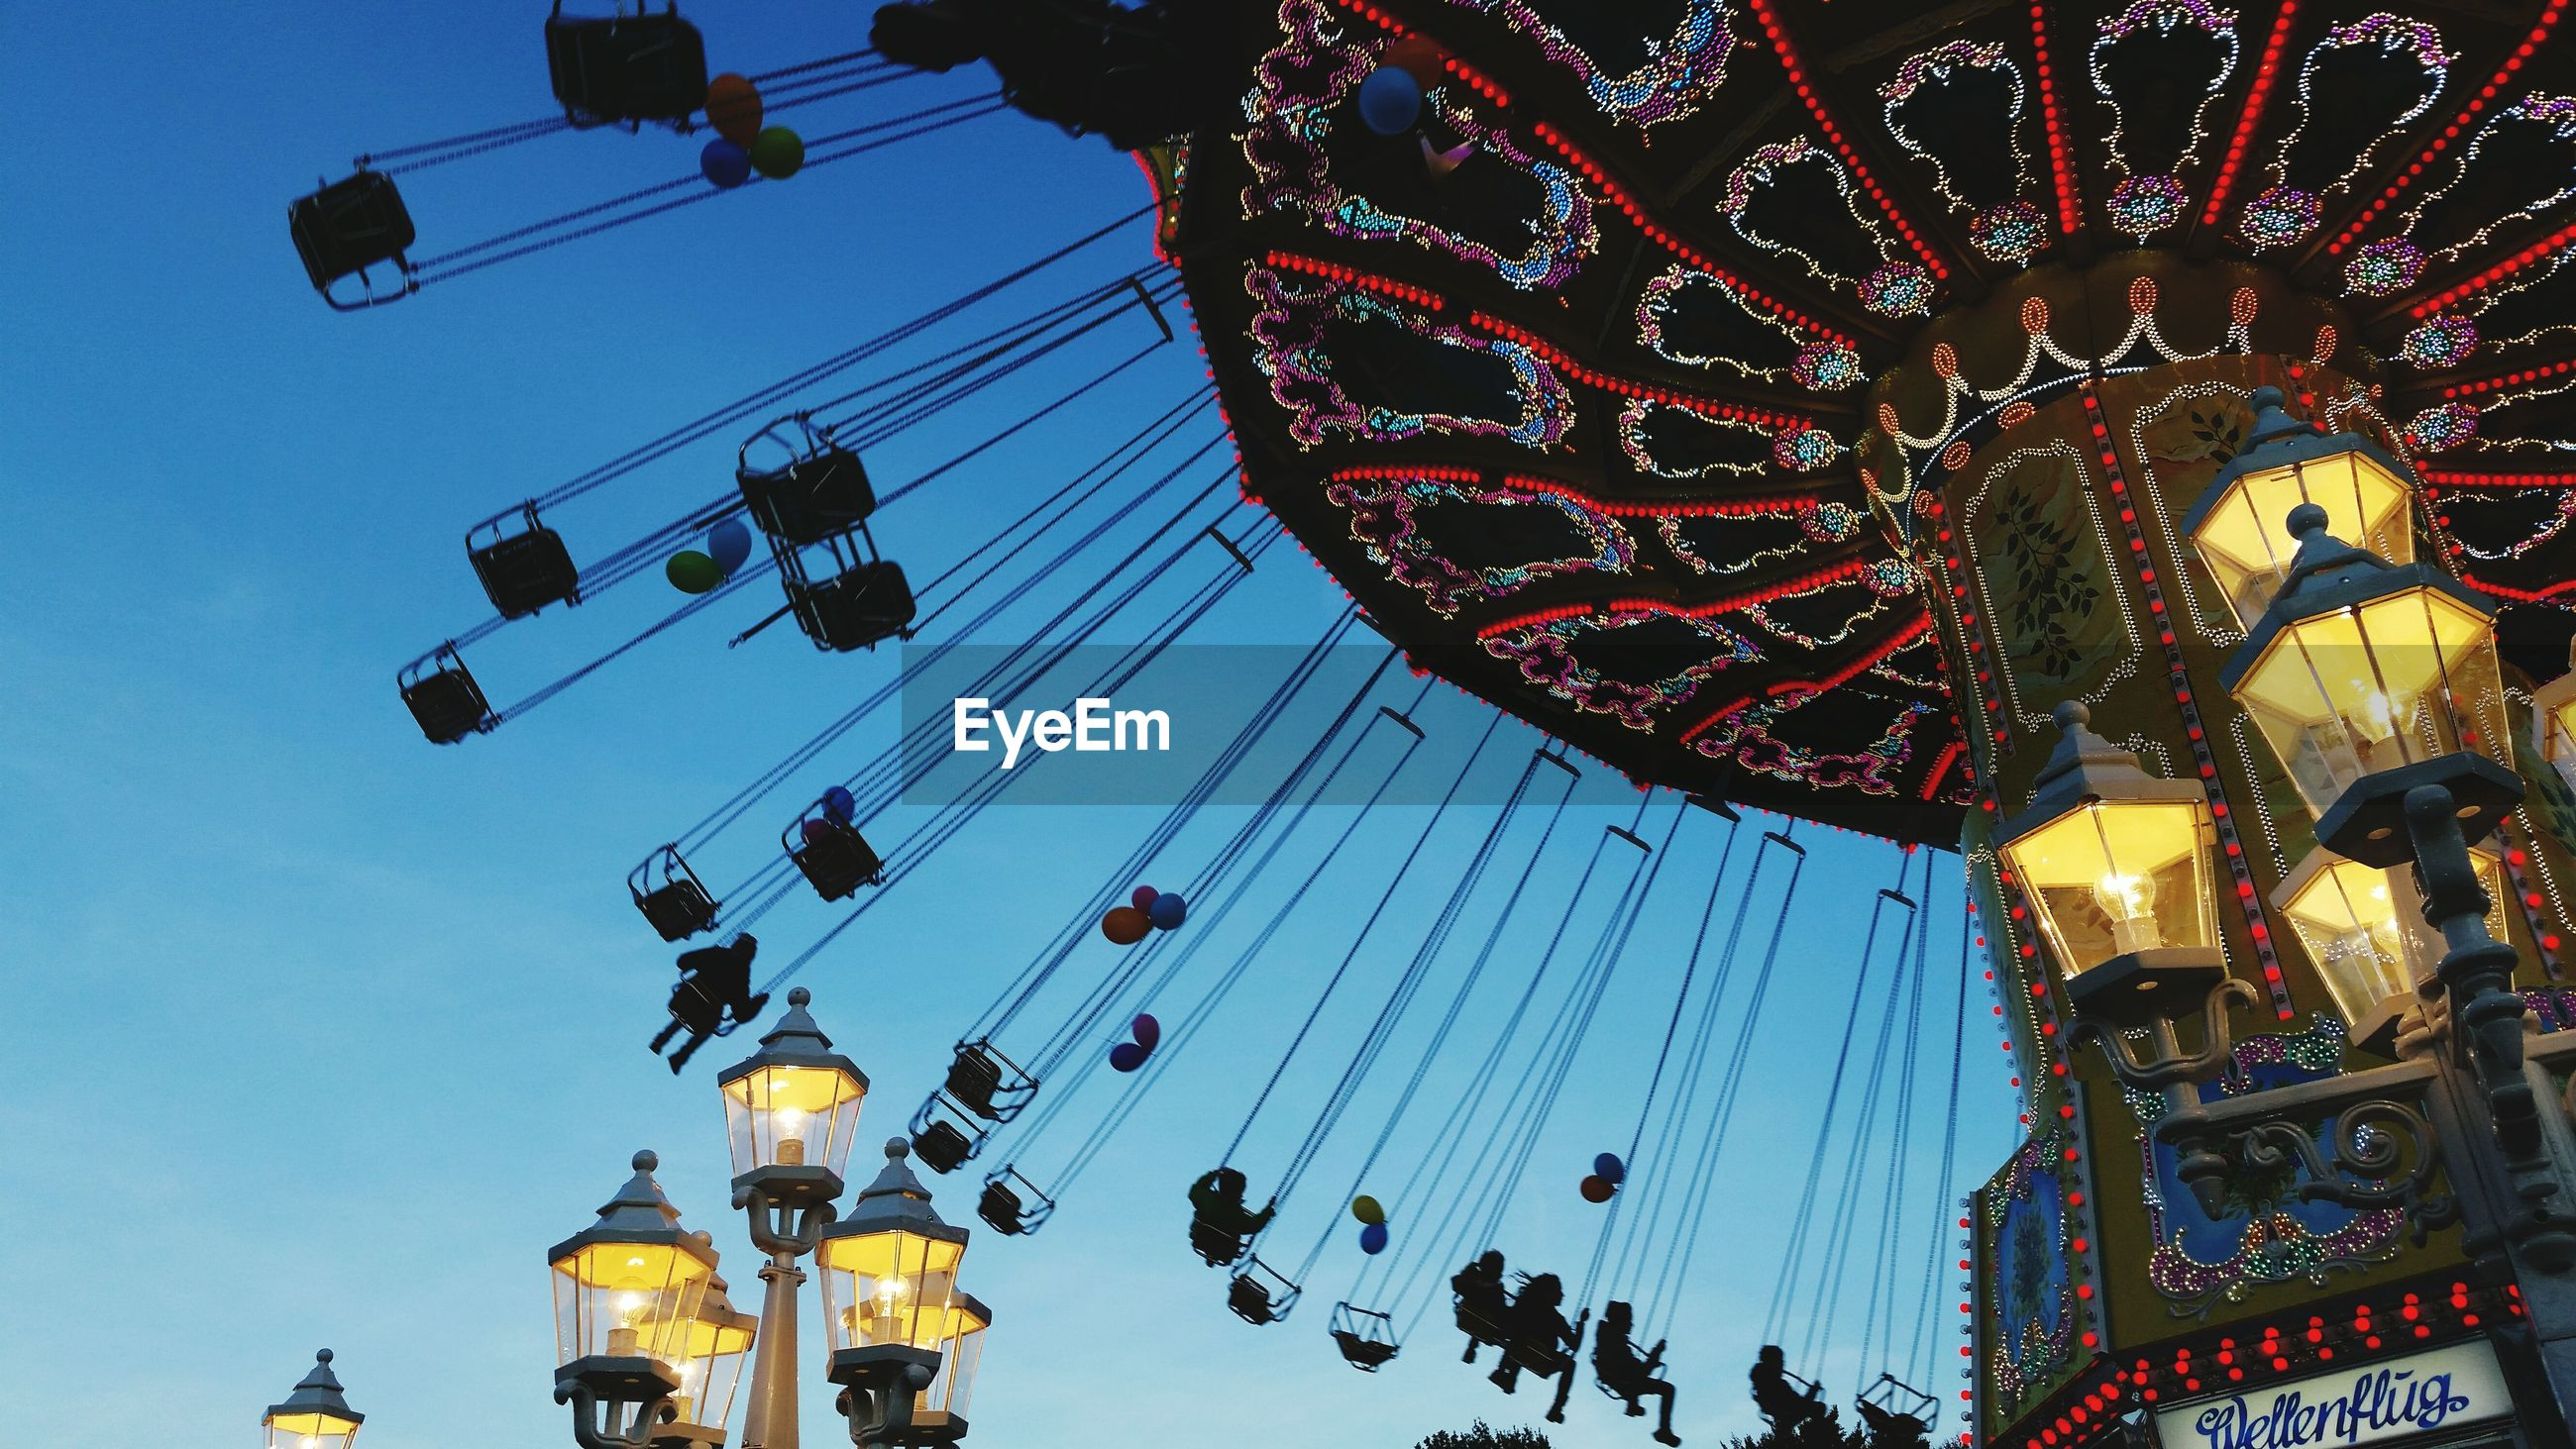 low angle view, amusement park, amusement park ride, arts culture and entertainment, illuminated, large group of people, ferris wheel, enjoyment, fun, celebration, leisure activity, sky, carousel, chain swing ride, lighting equipment, decoration, traveling carnival, cultures, night